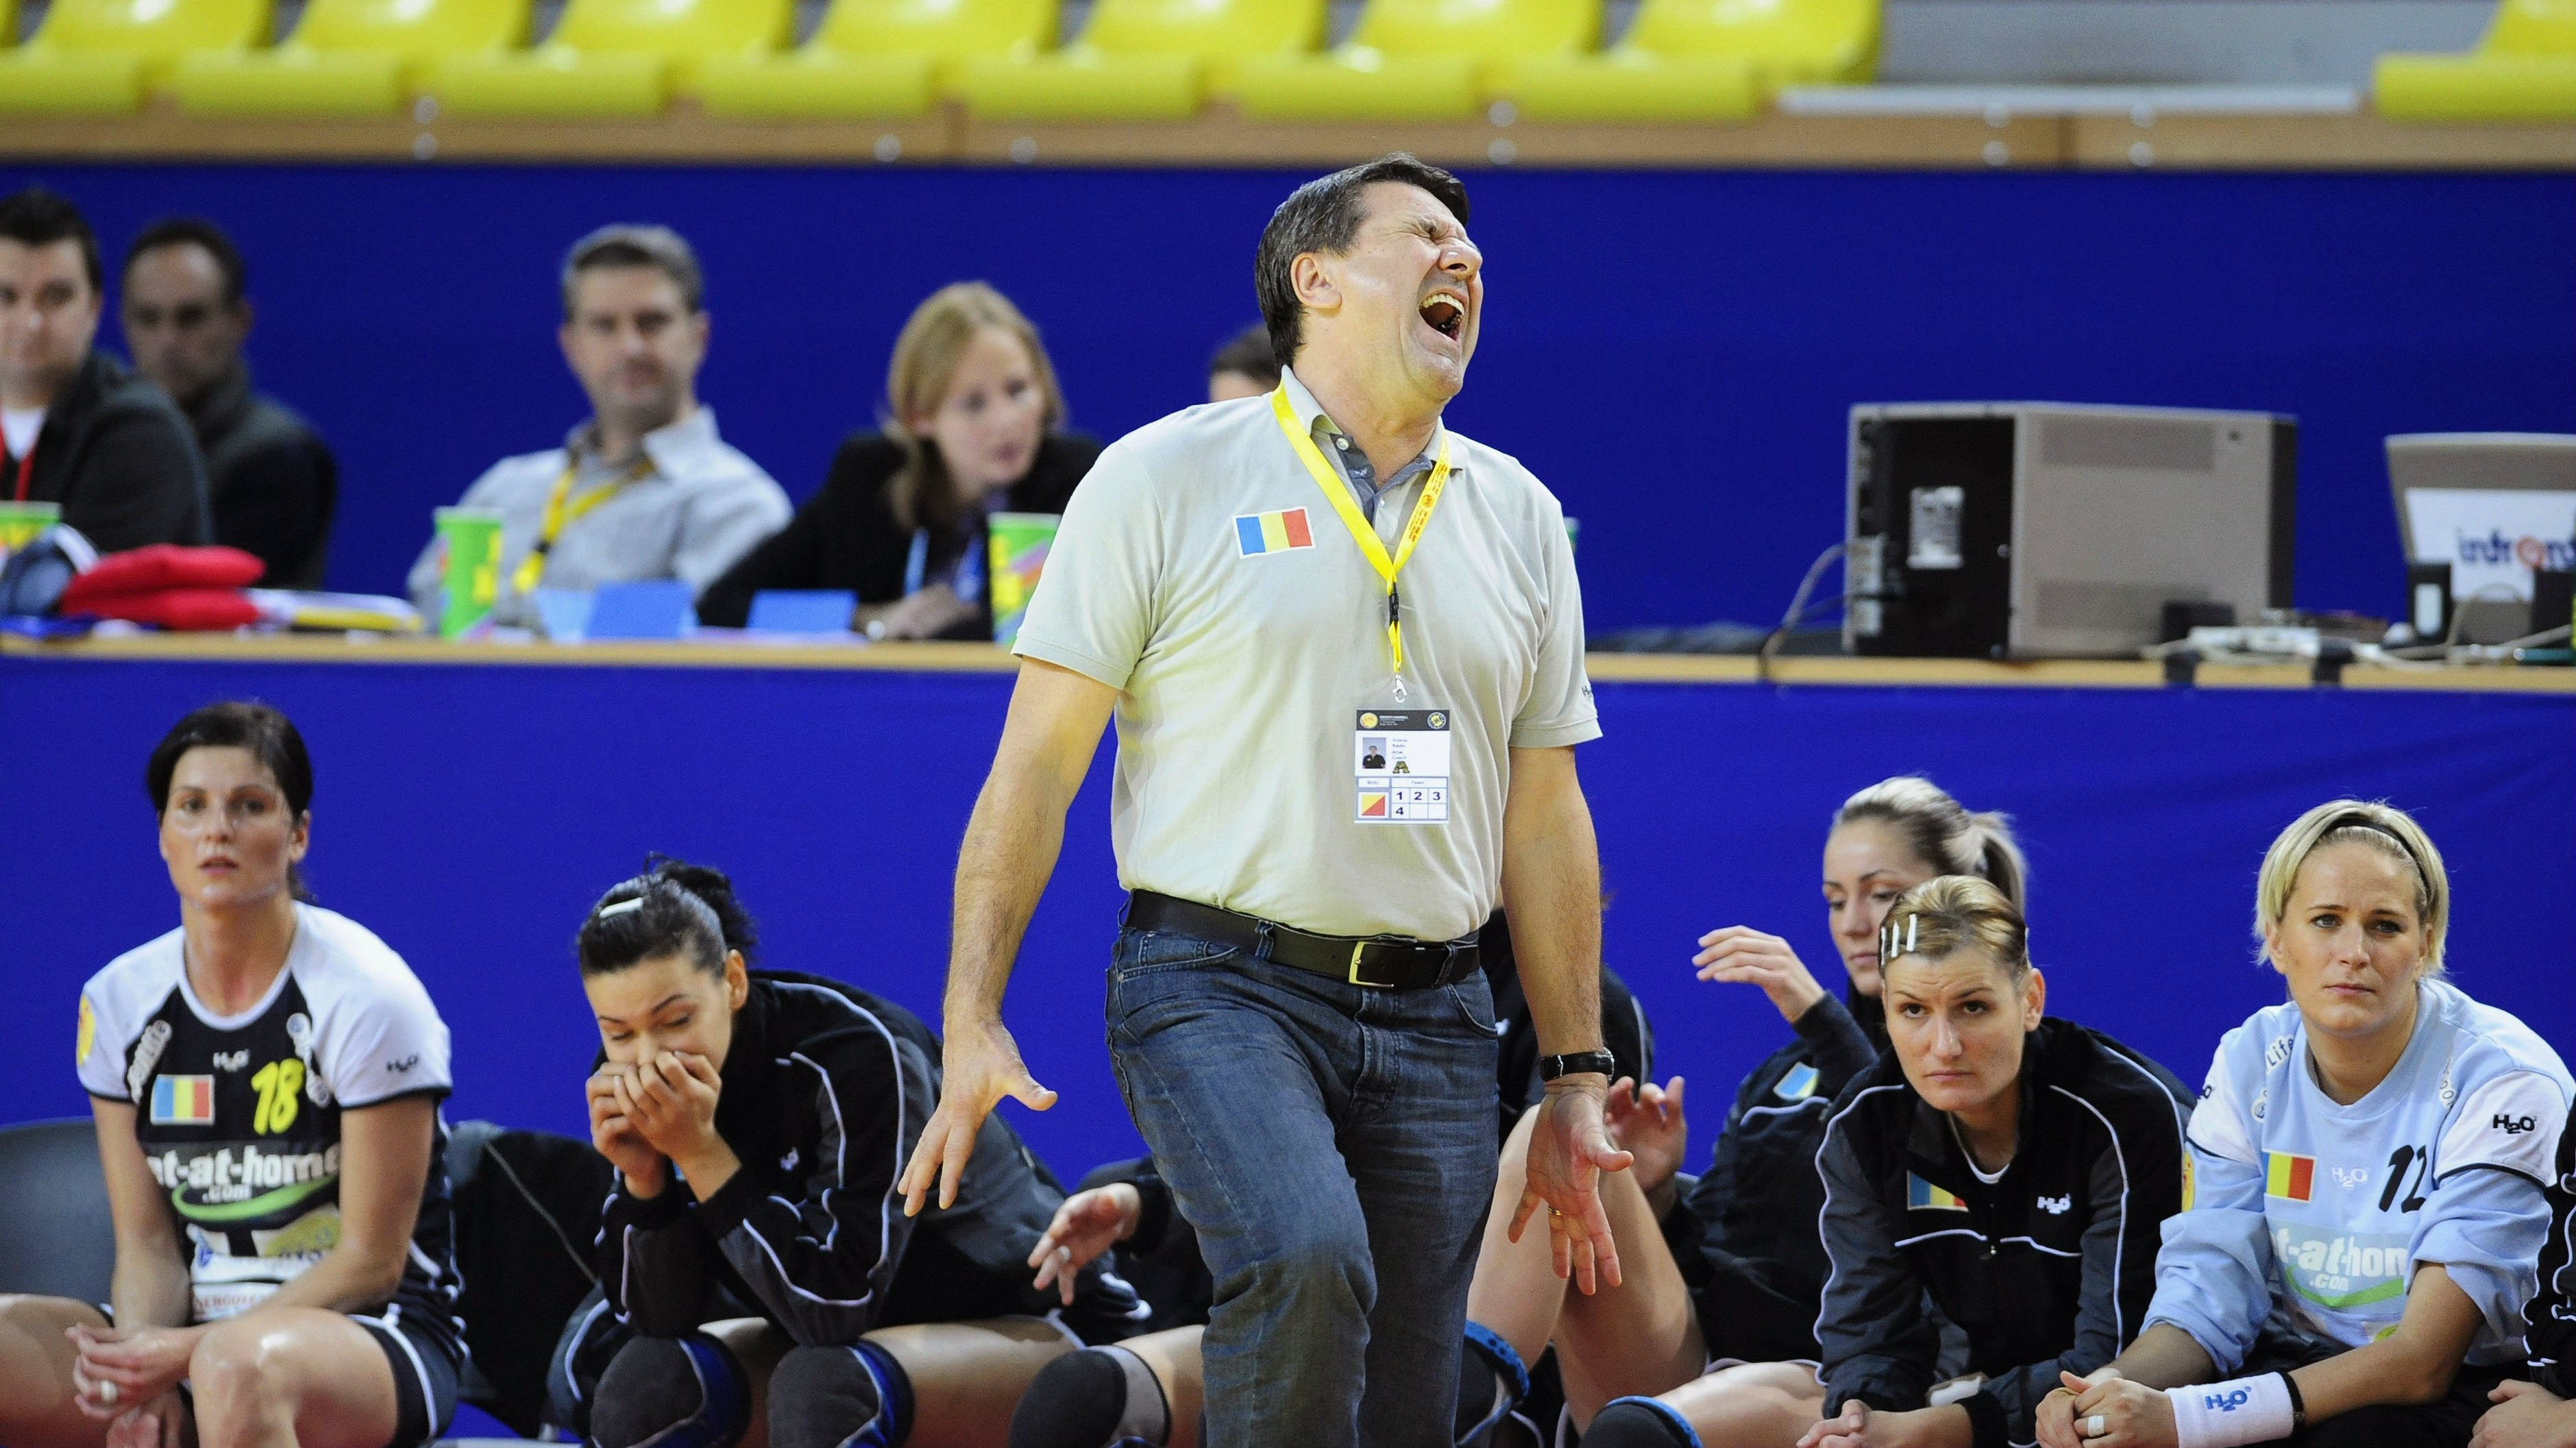 Romania's head coach Radu Voina (C) reacts during his team Euro 2008 women's preliminary round group A handball match against France in Skopje December 5, 2008. REUTERS/Ognen Teofilovski (MACEDONIA)